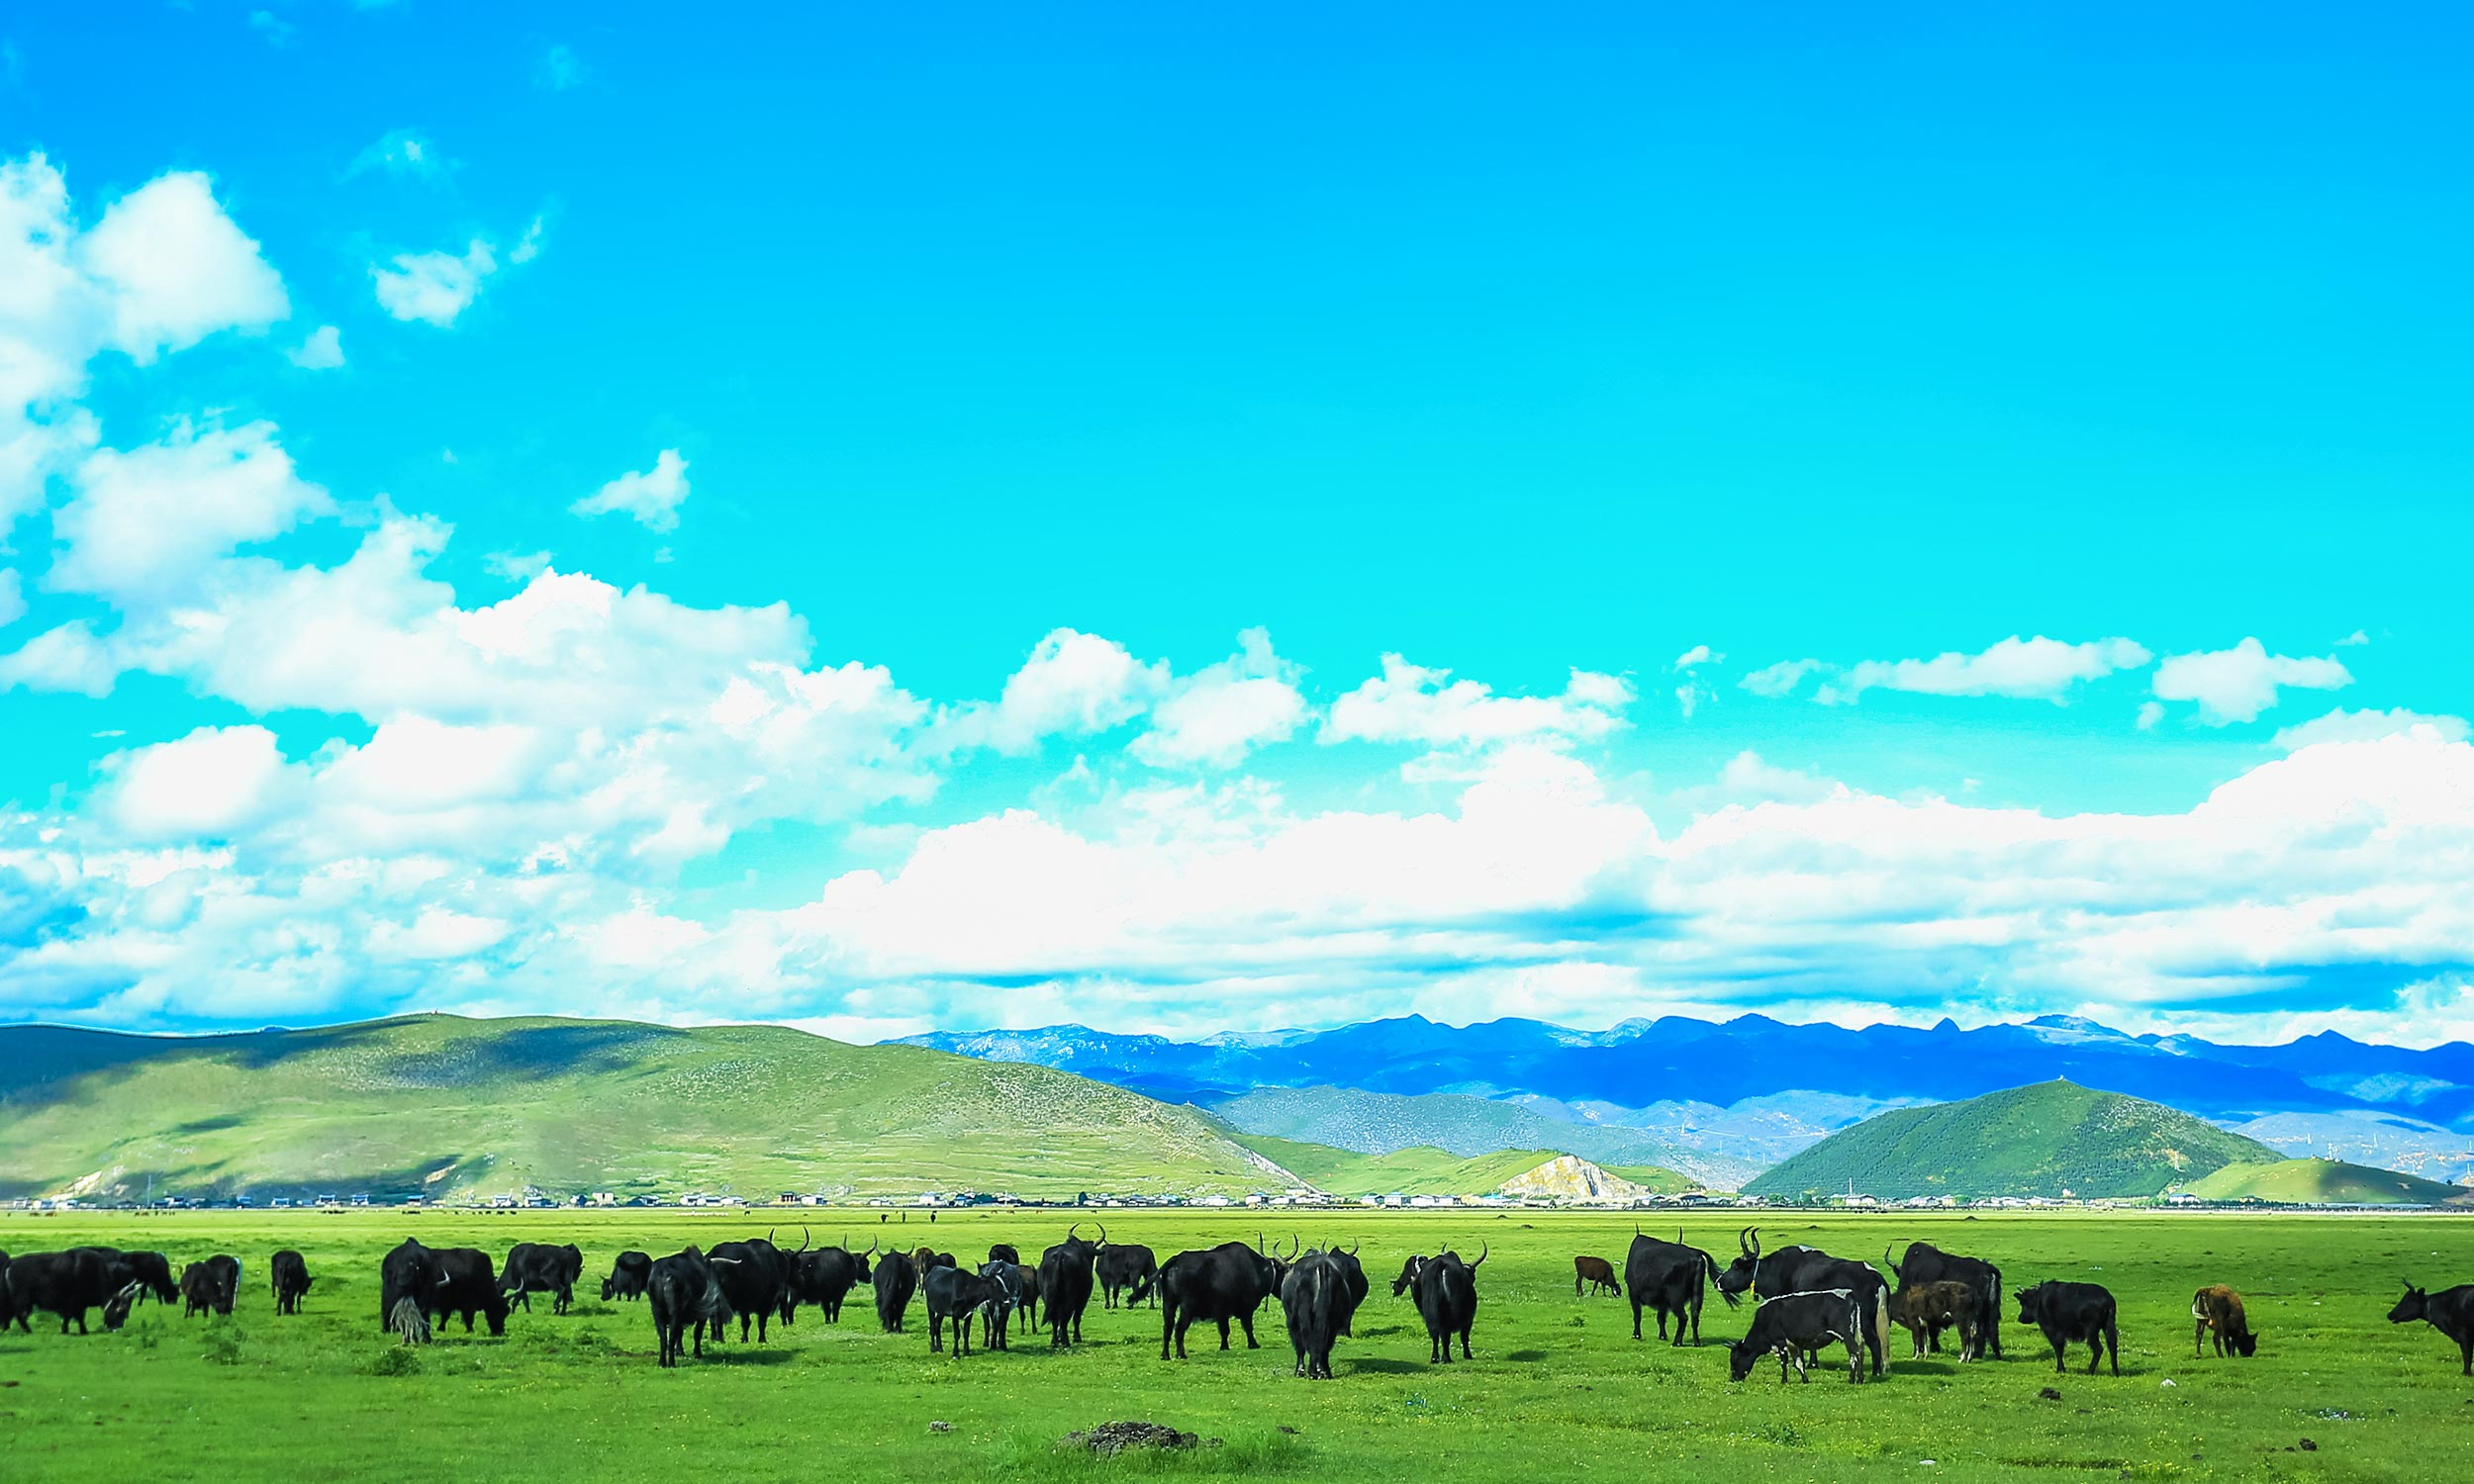 The highlands near Shangri-La in the Yunnan province.